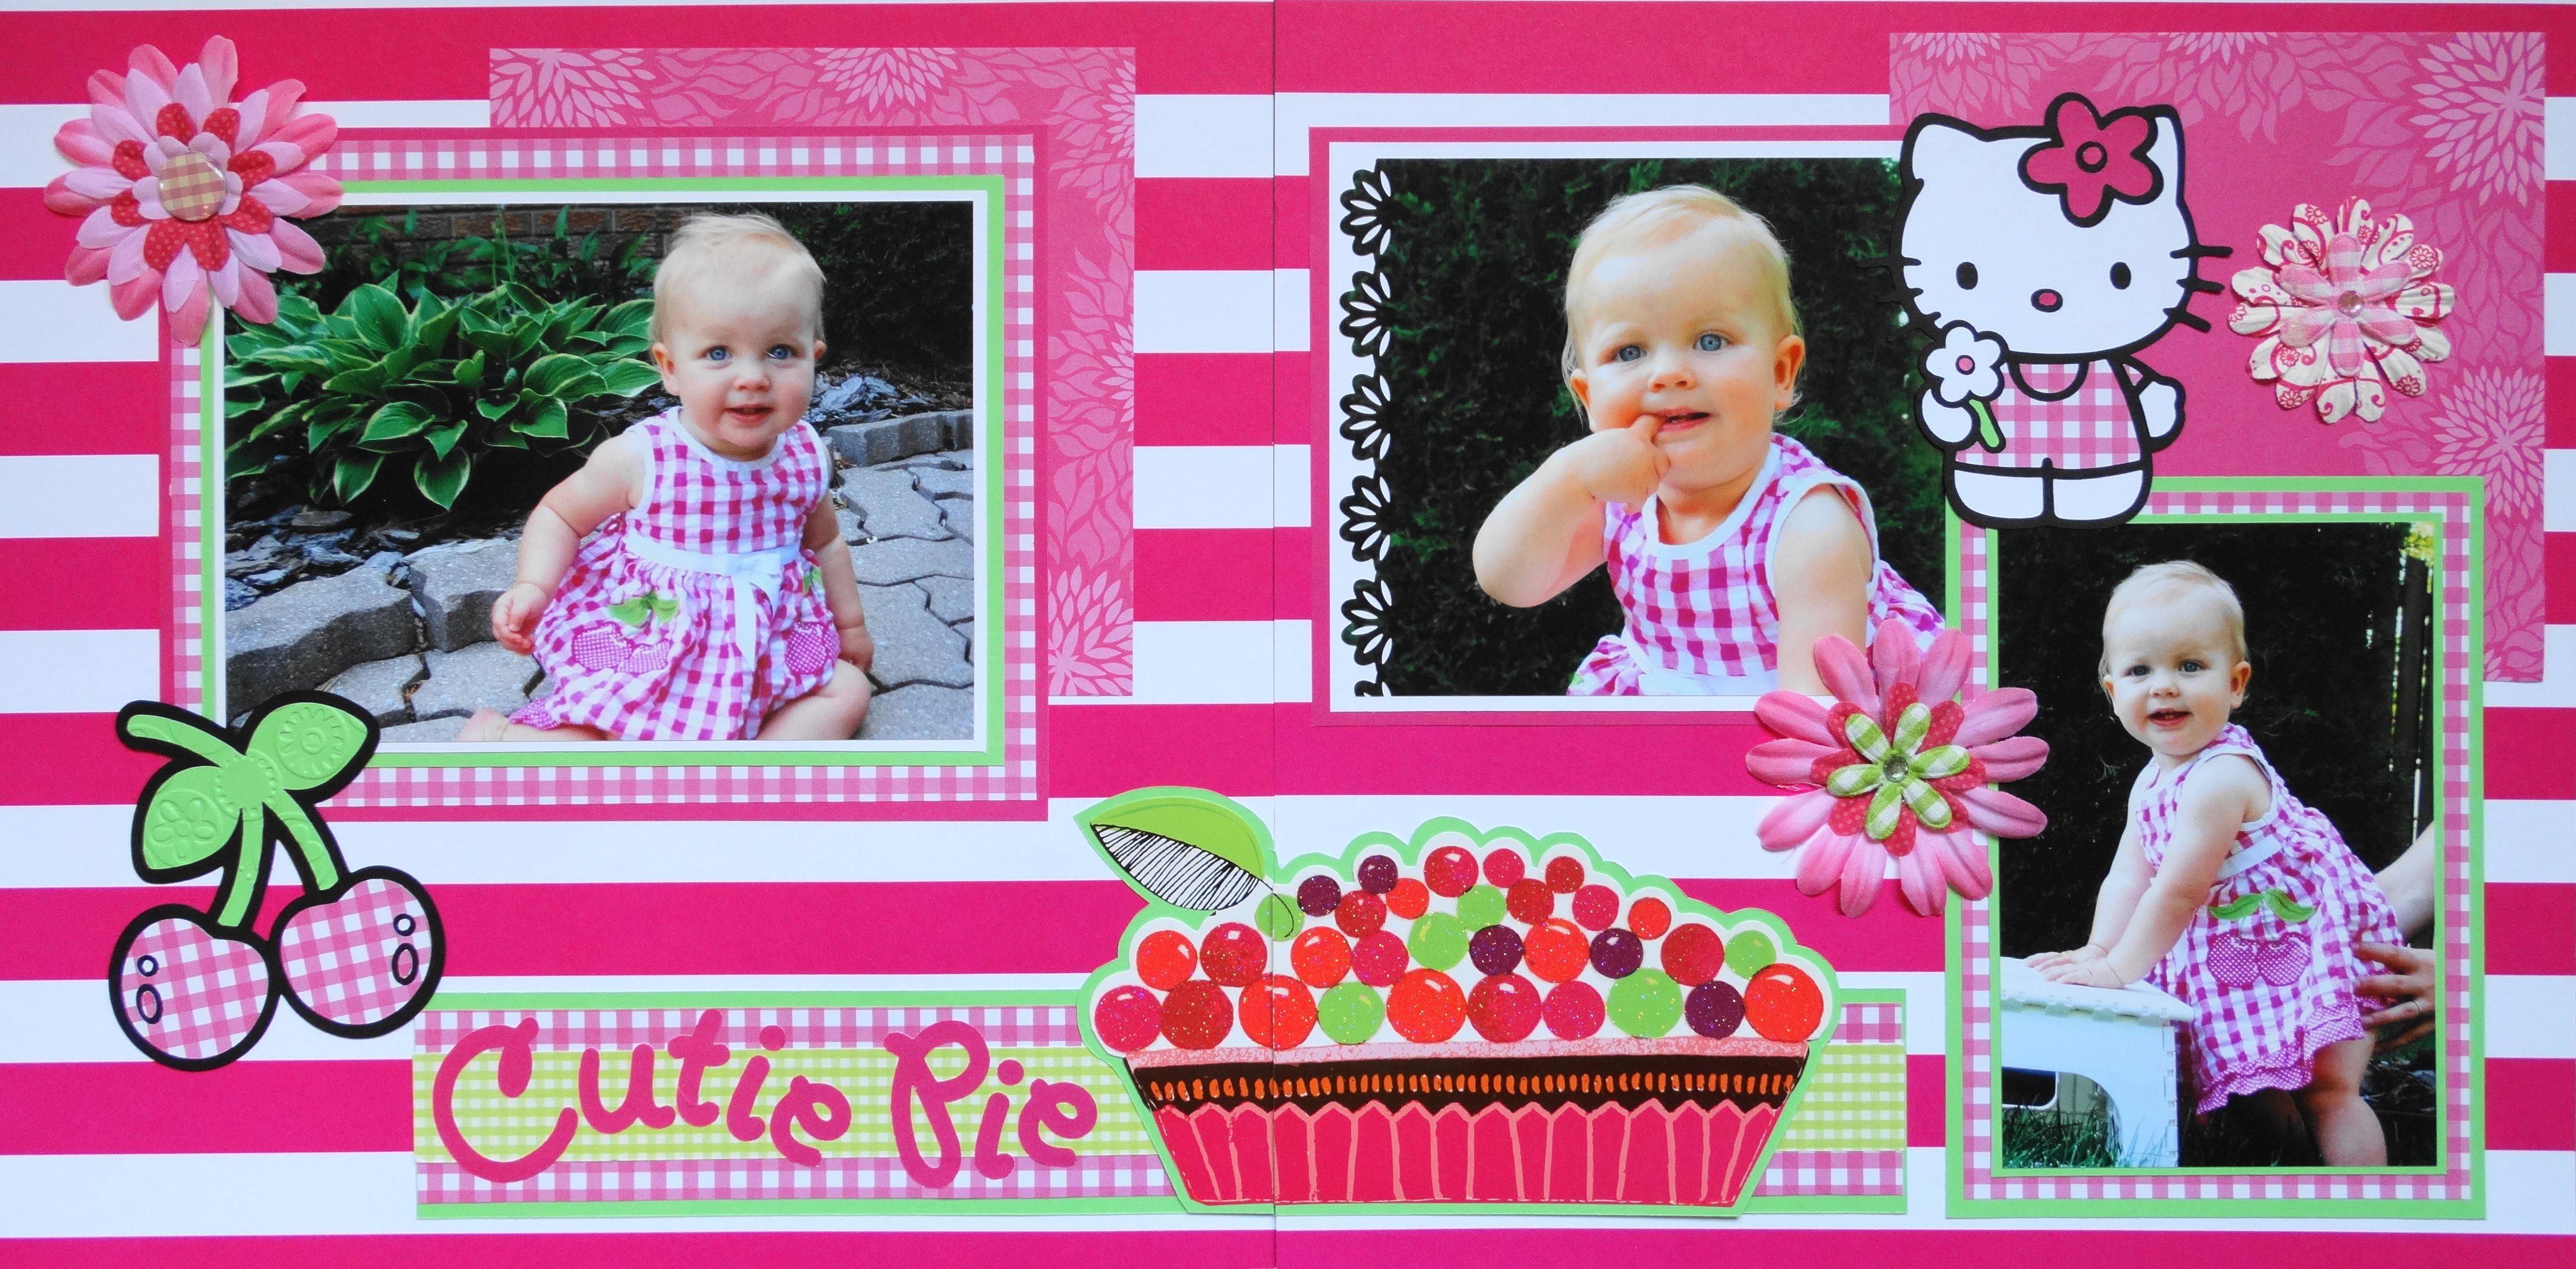 Hello kitty scrapbook ideas - Scrapbook Page Cutie Pie 2 Page Girl Layout With Hello Kitty Cherries And